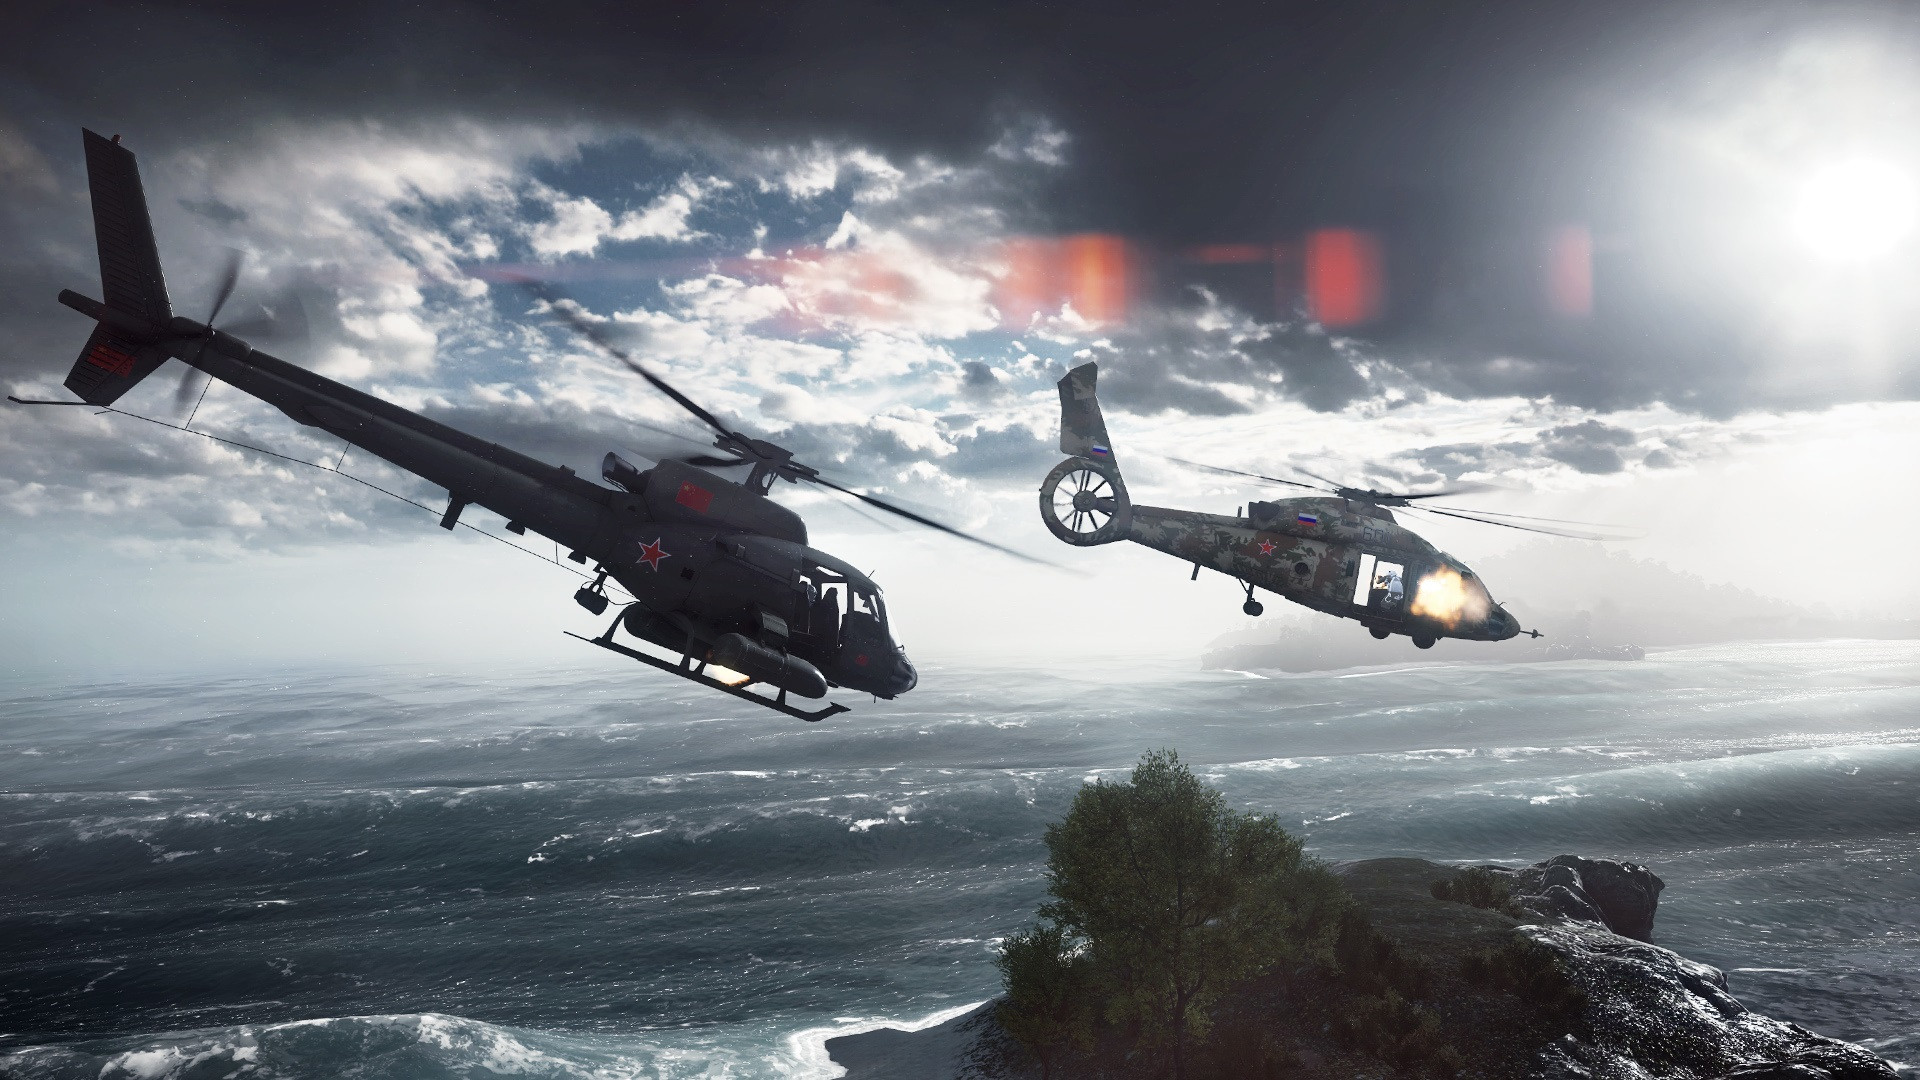 Battlefield 4 helicopter assault